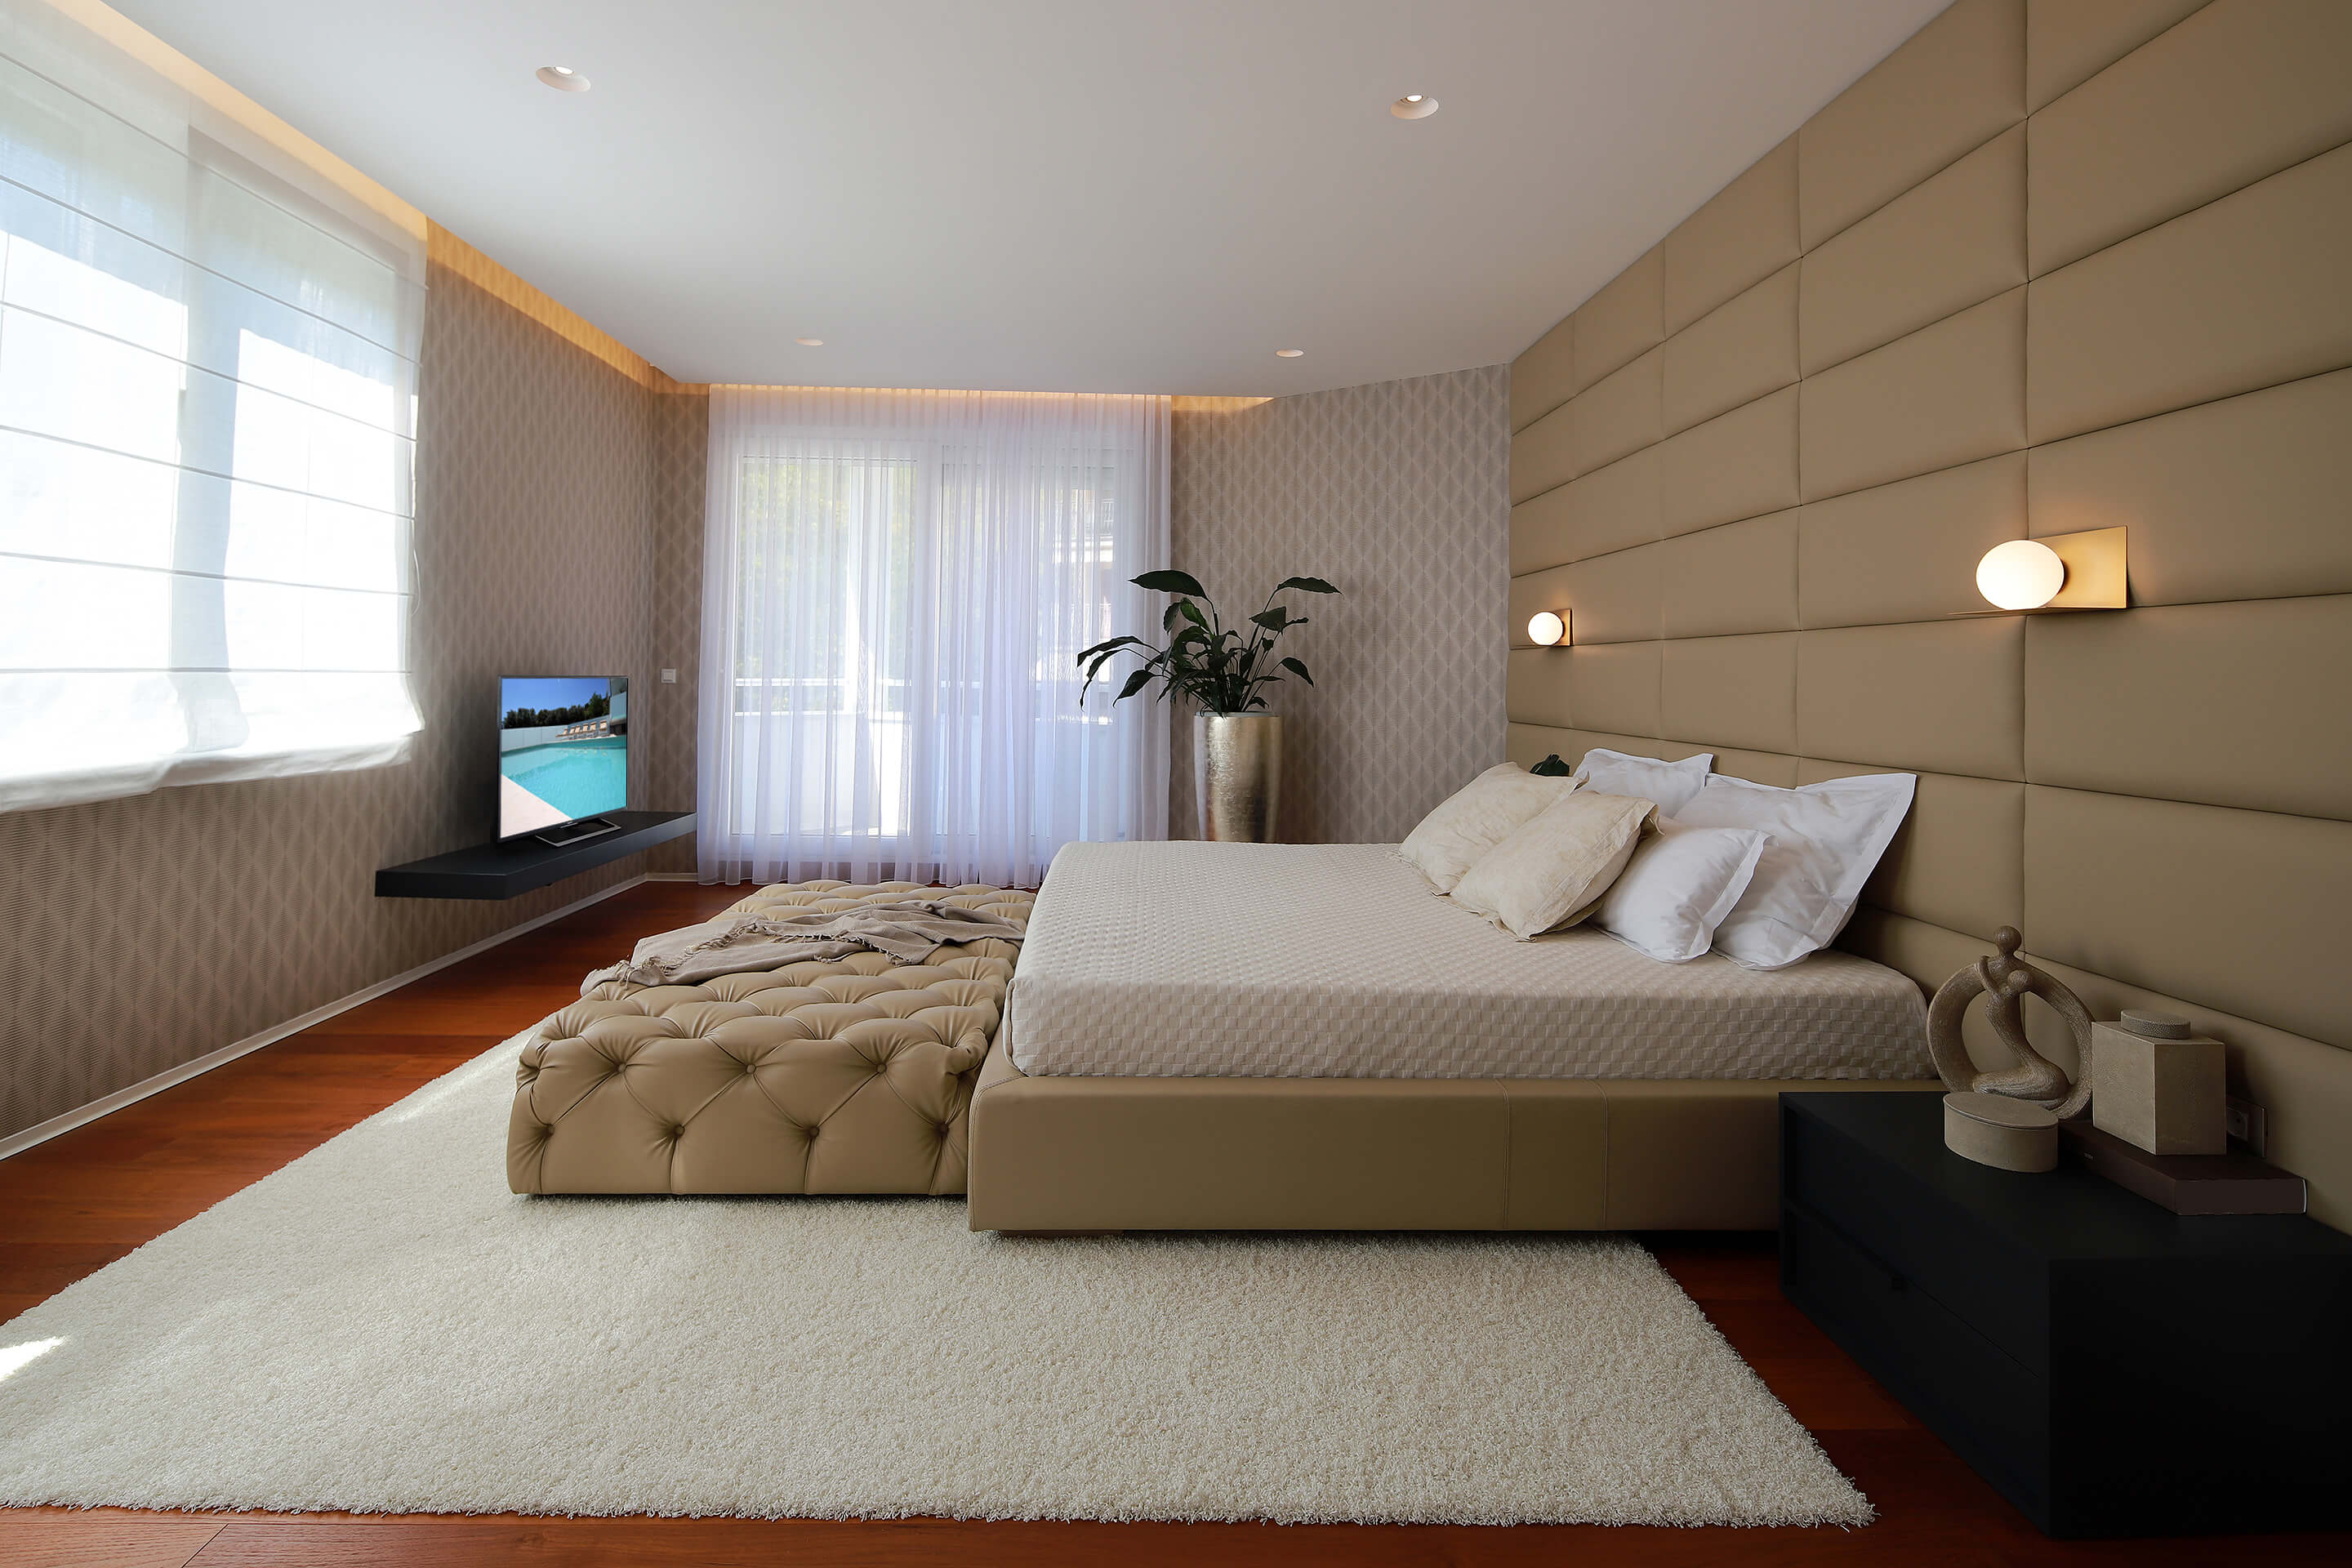 penthouse - master bedroom - beautiful - spacious - tv